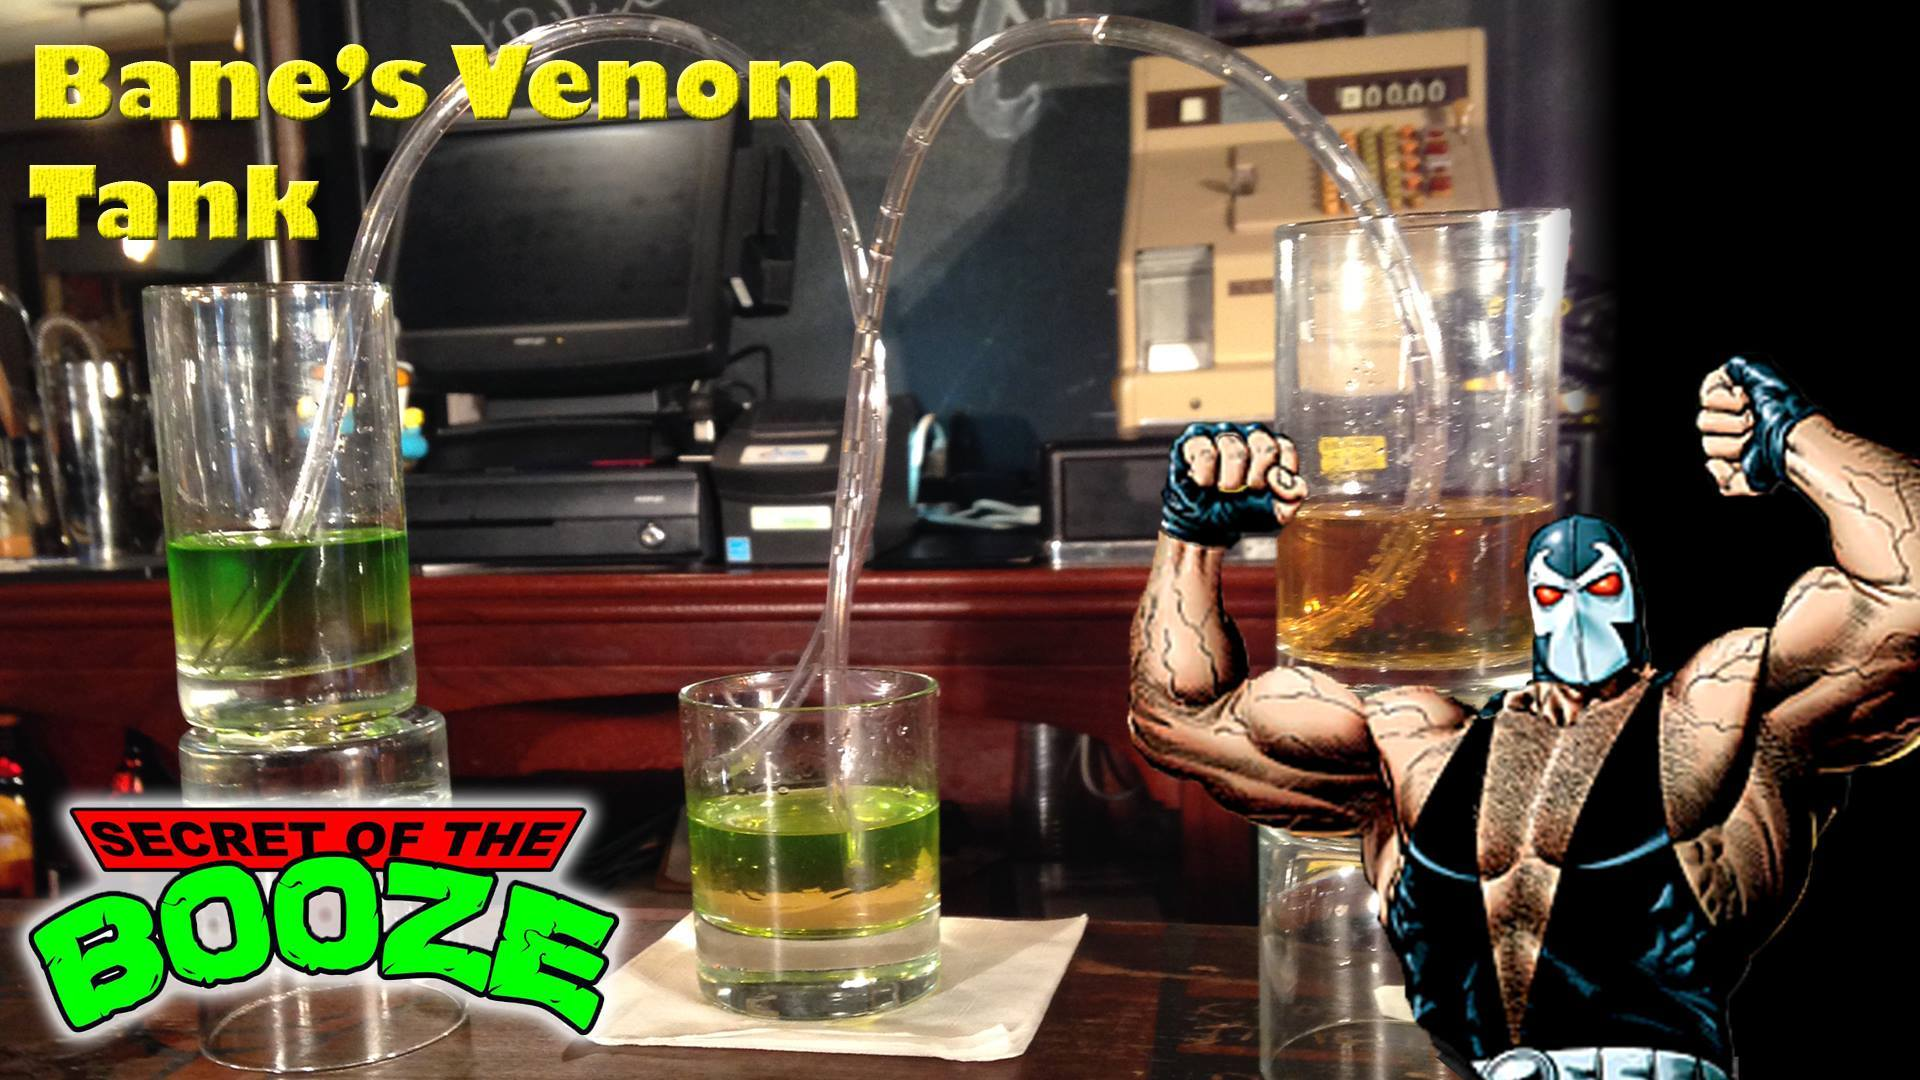 bane's secret of the booze drink